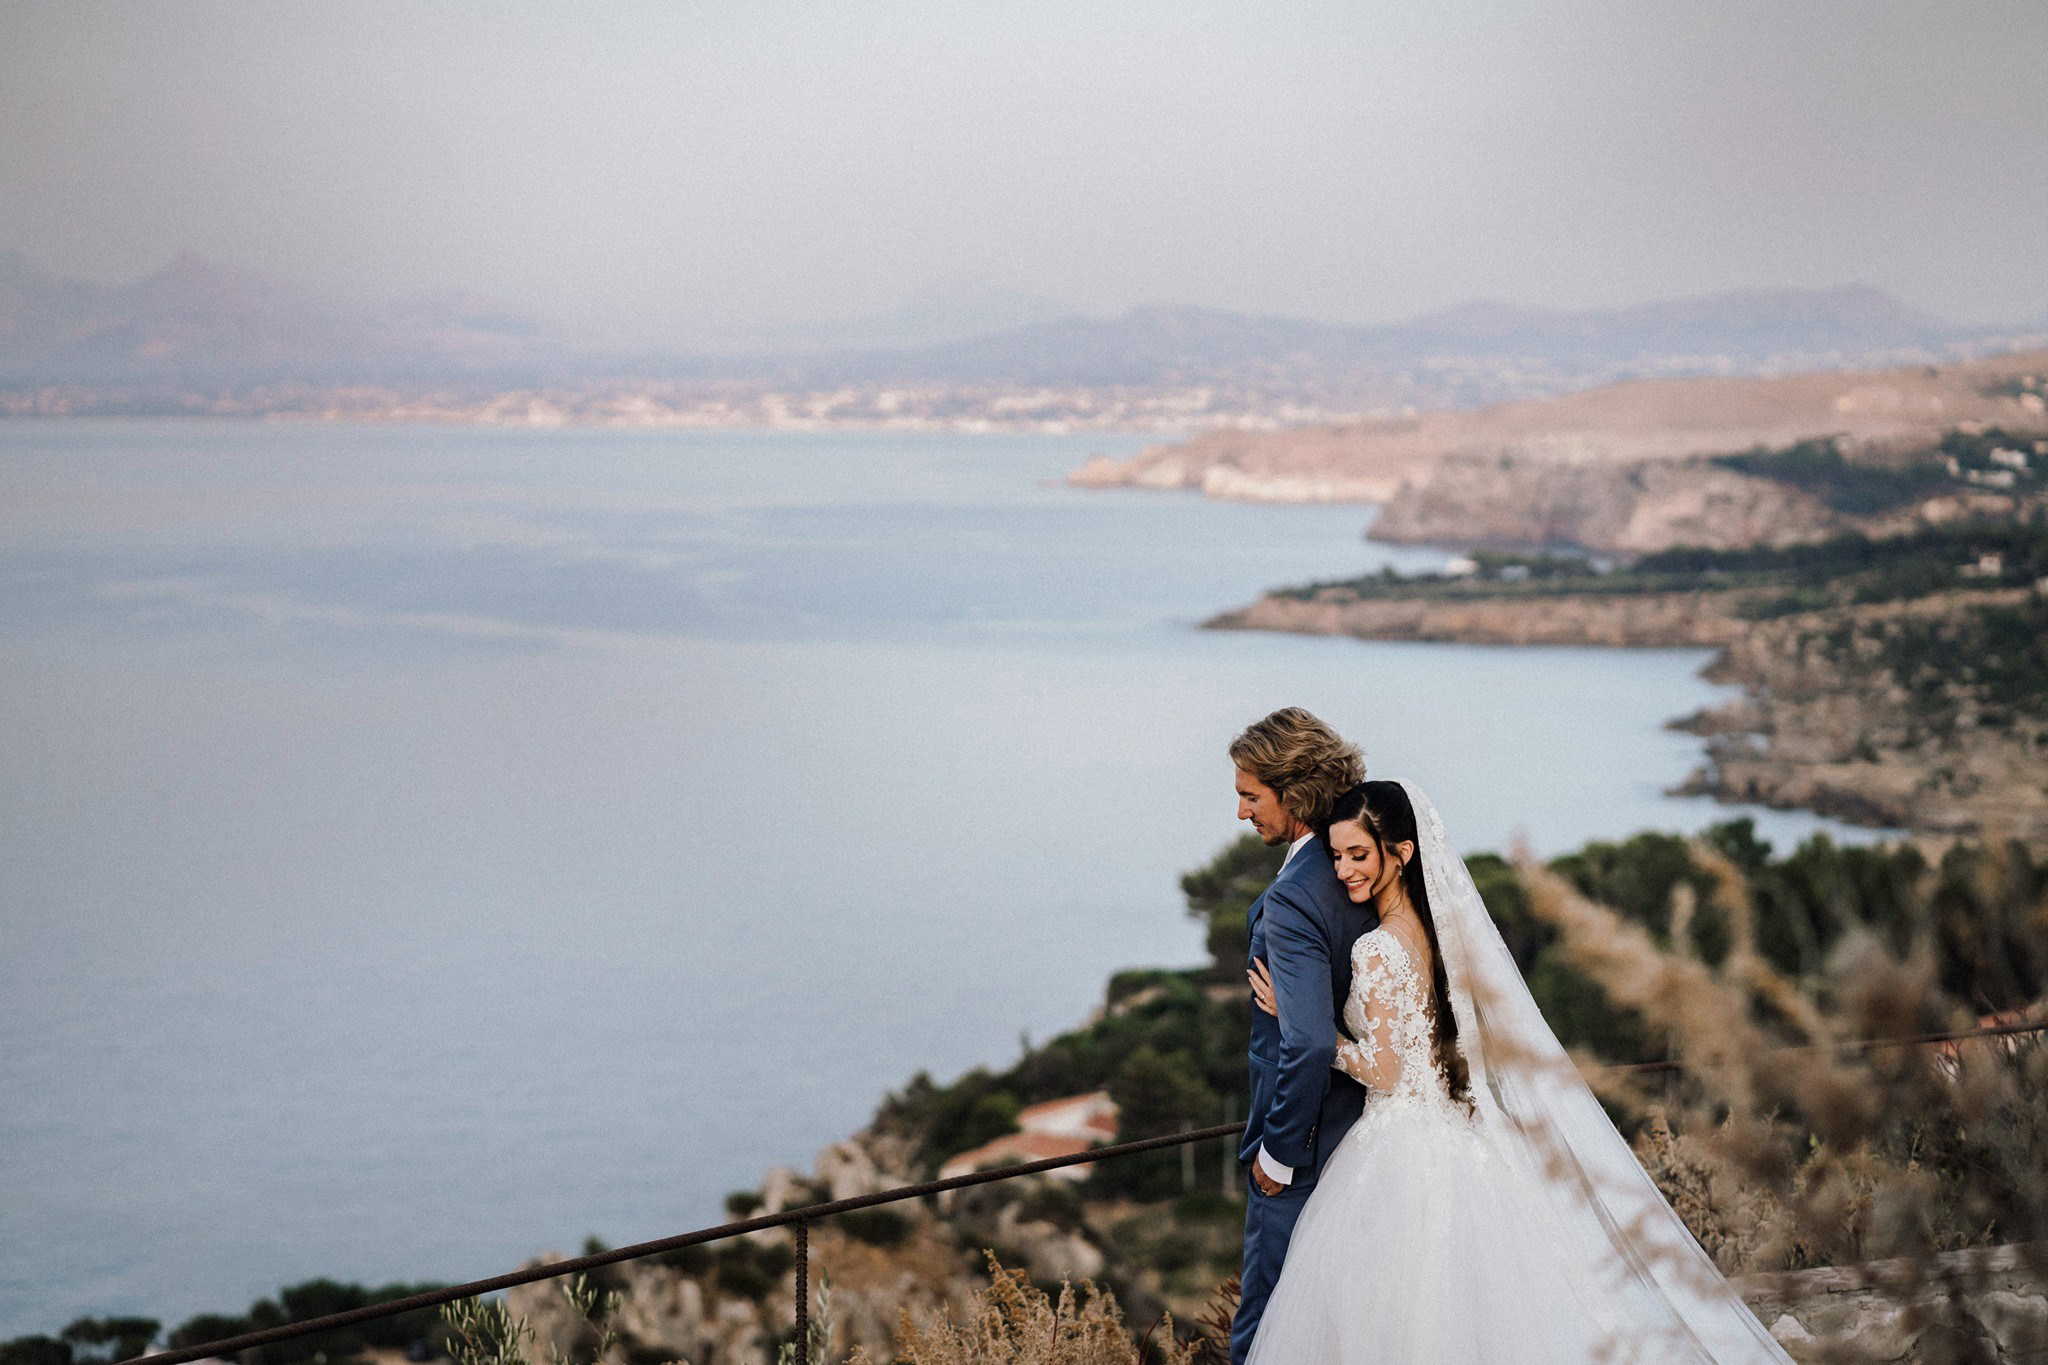 Wedding Photo in Sicily